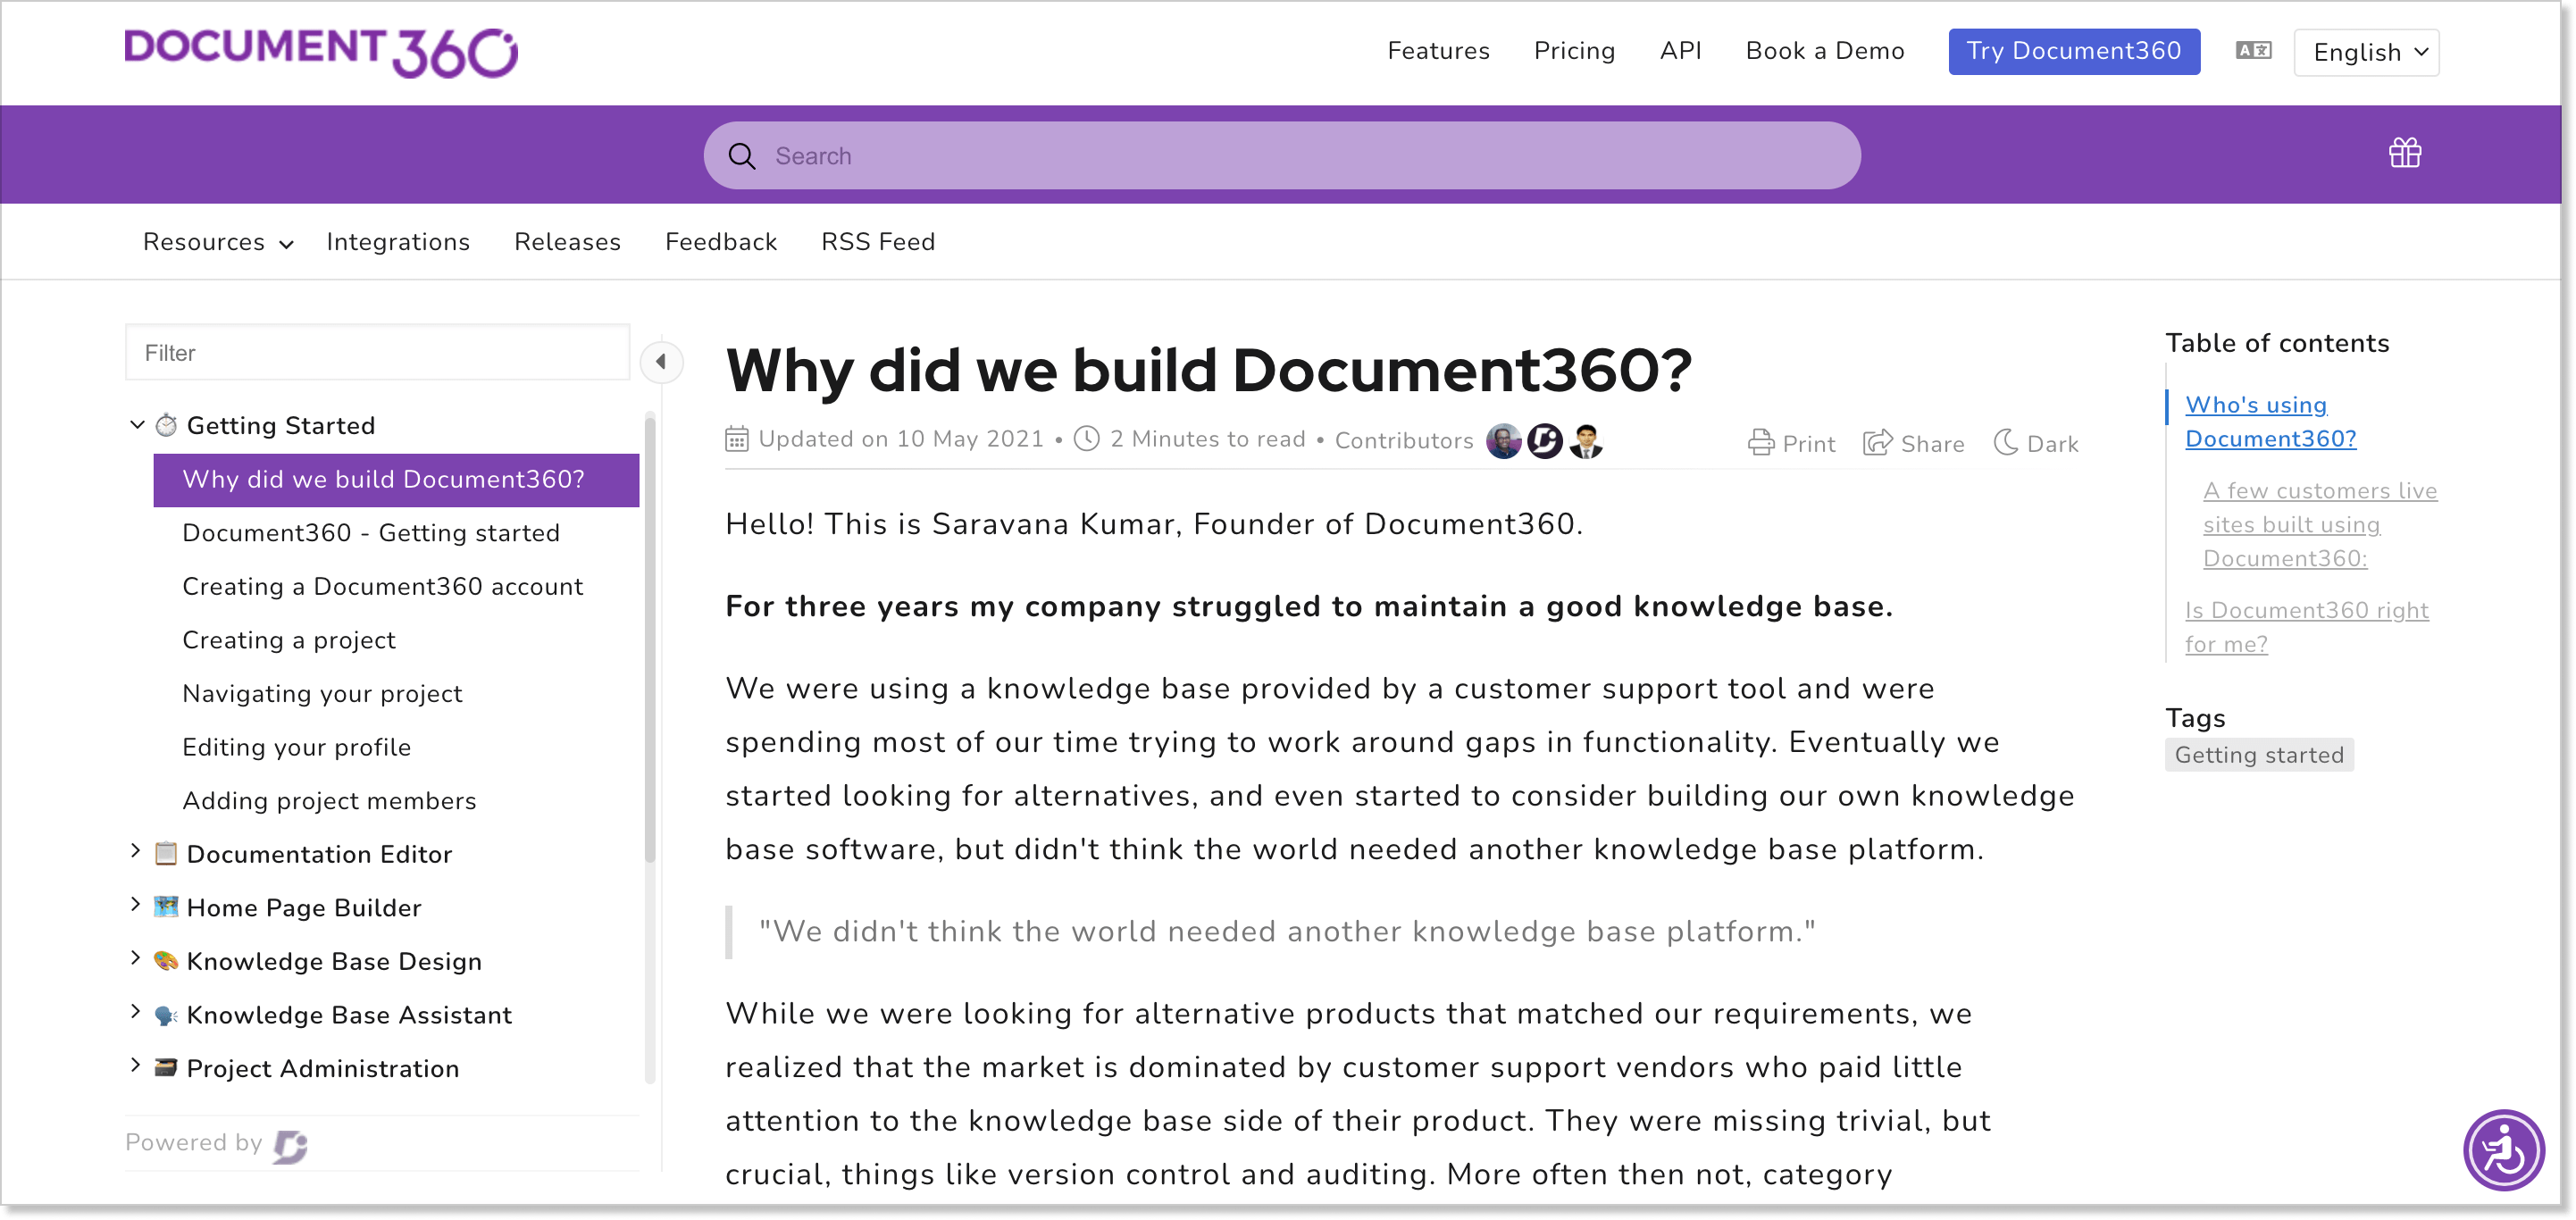 Document360 knowledge management software